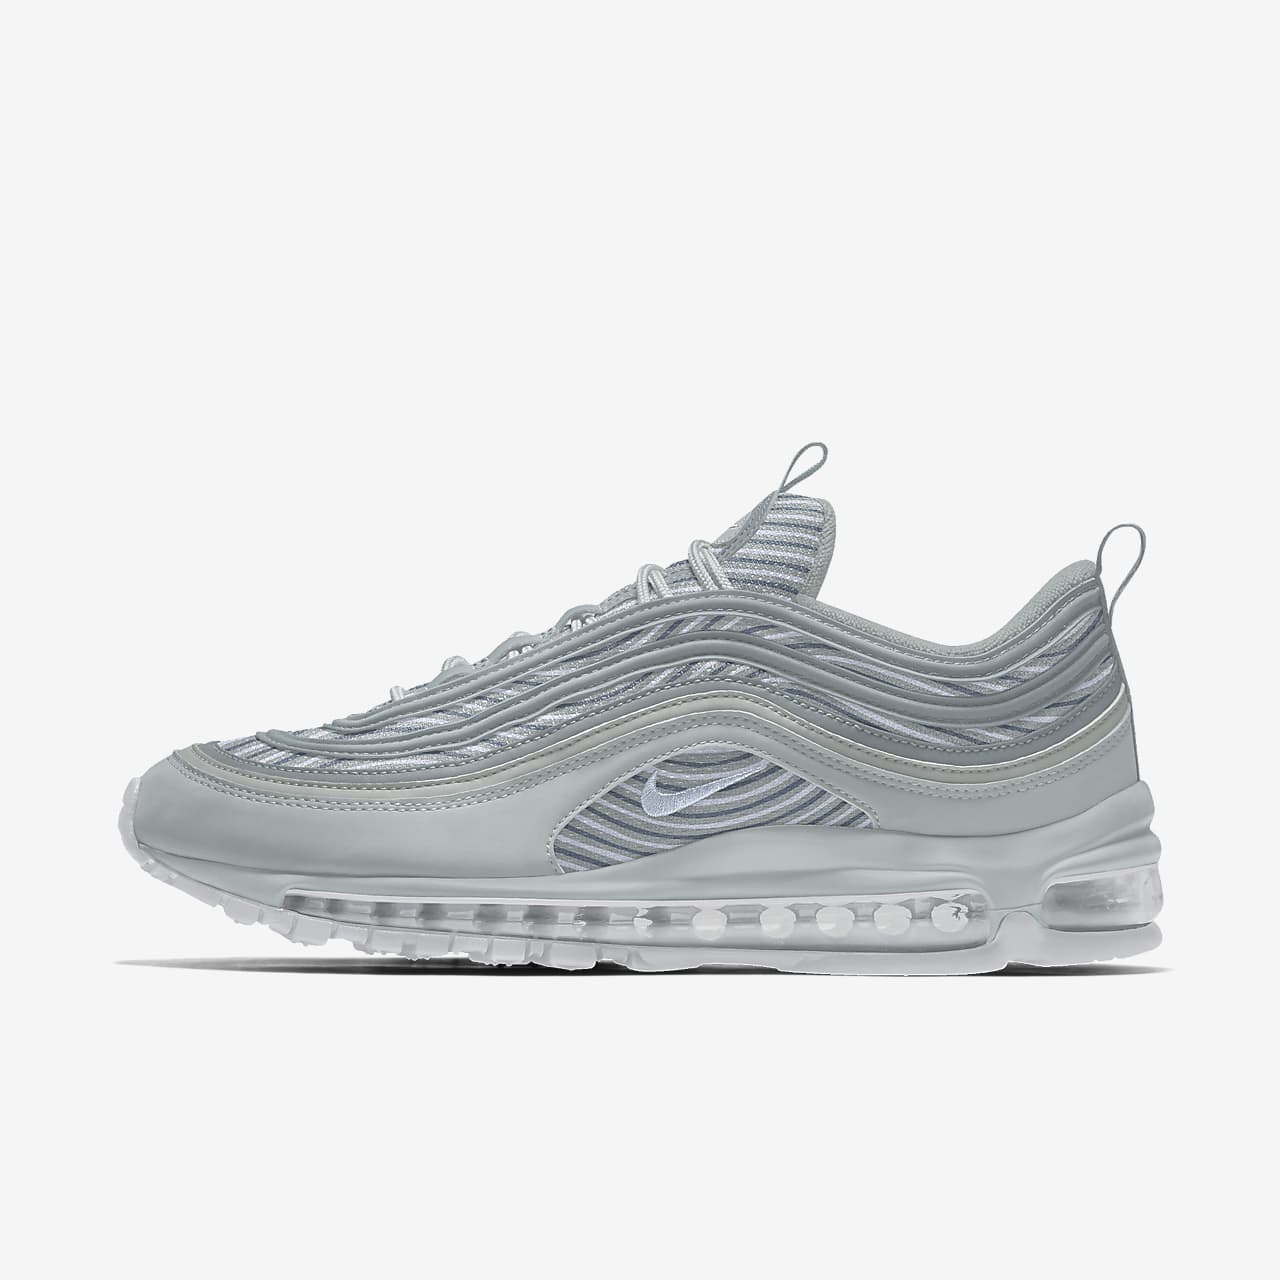 Nike Air Max 97 By You 专属定制运动鞋